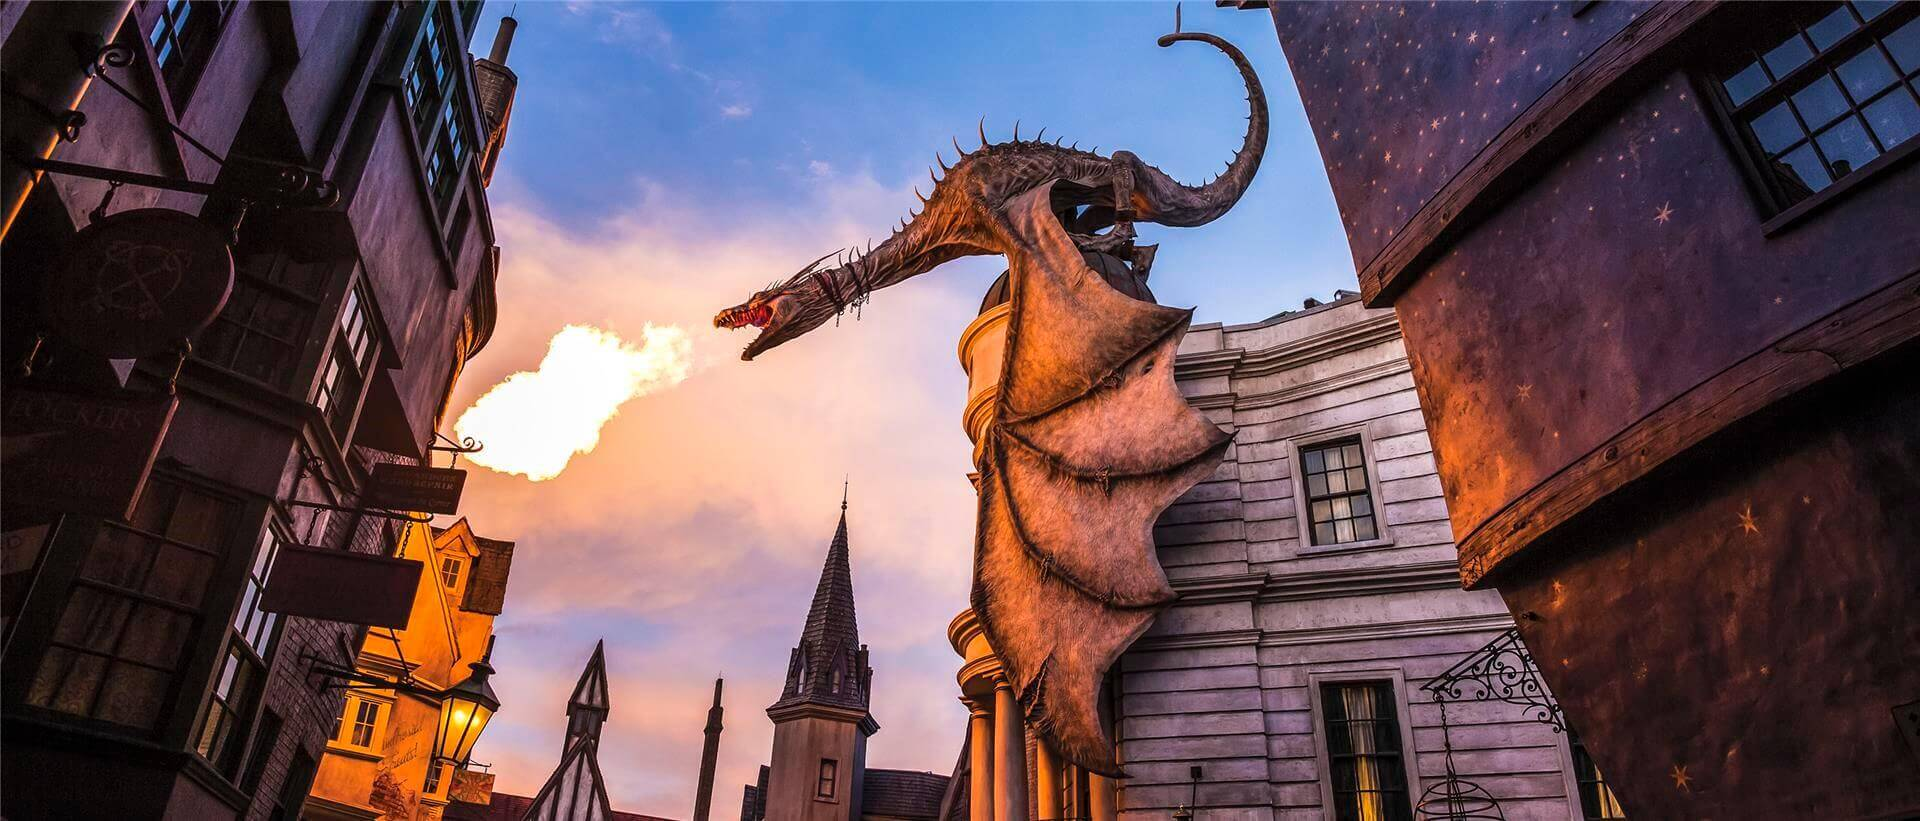 https://www.universalorlando.com/webdata/k2/en/us/files/Images/escape-from-gringotts-ride-dragon1-a-00.jpg